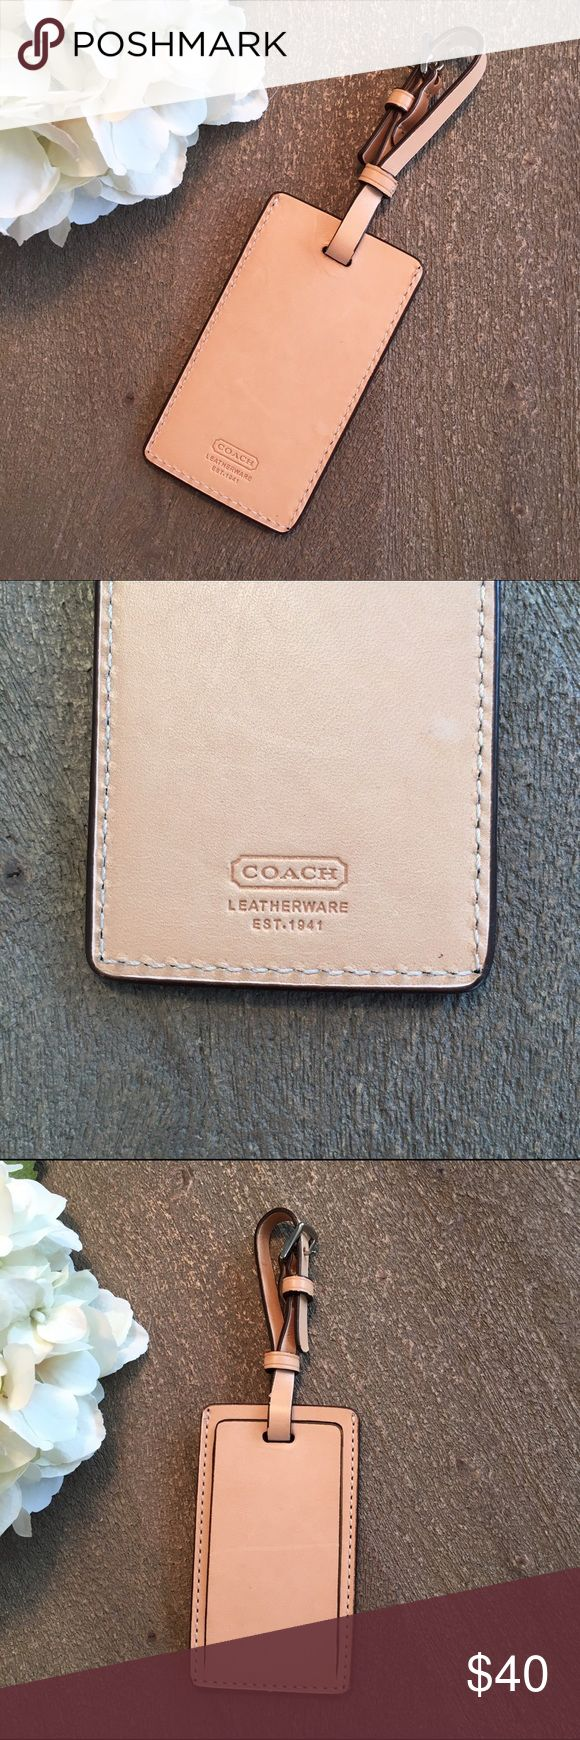 Coach luggage tag- leather Genuine Coach leather luggage tag Coach Accessories